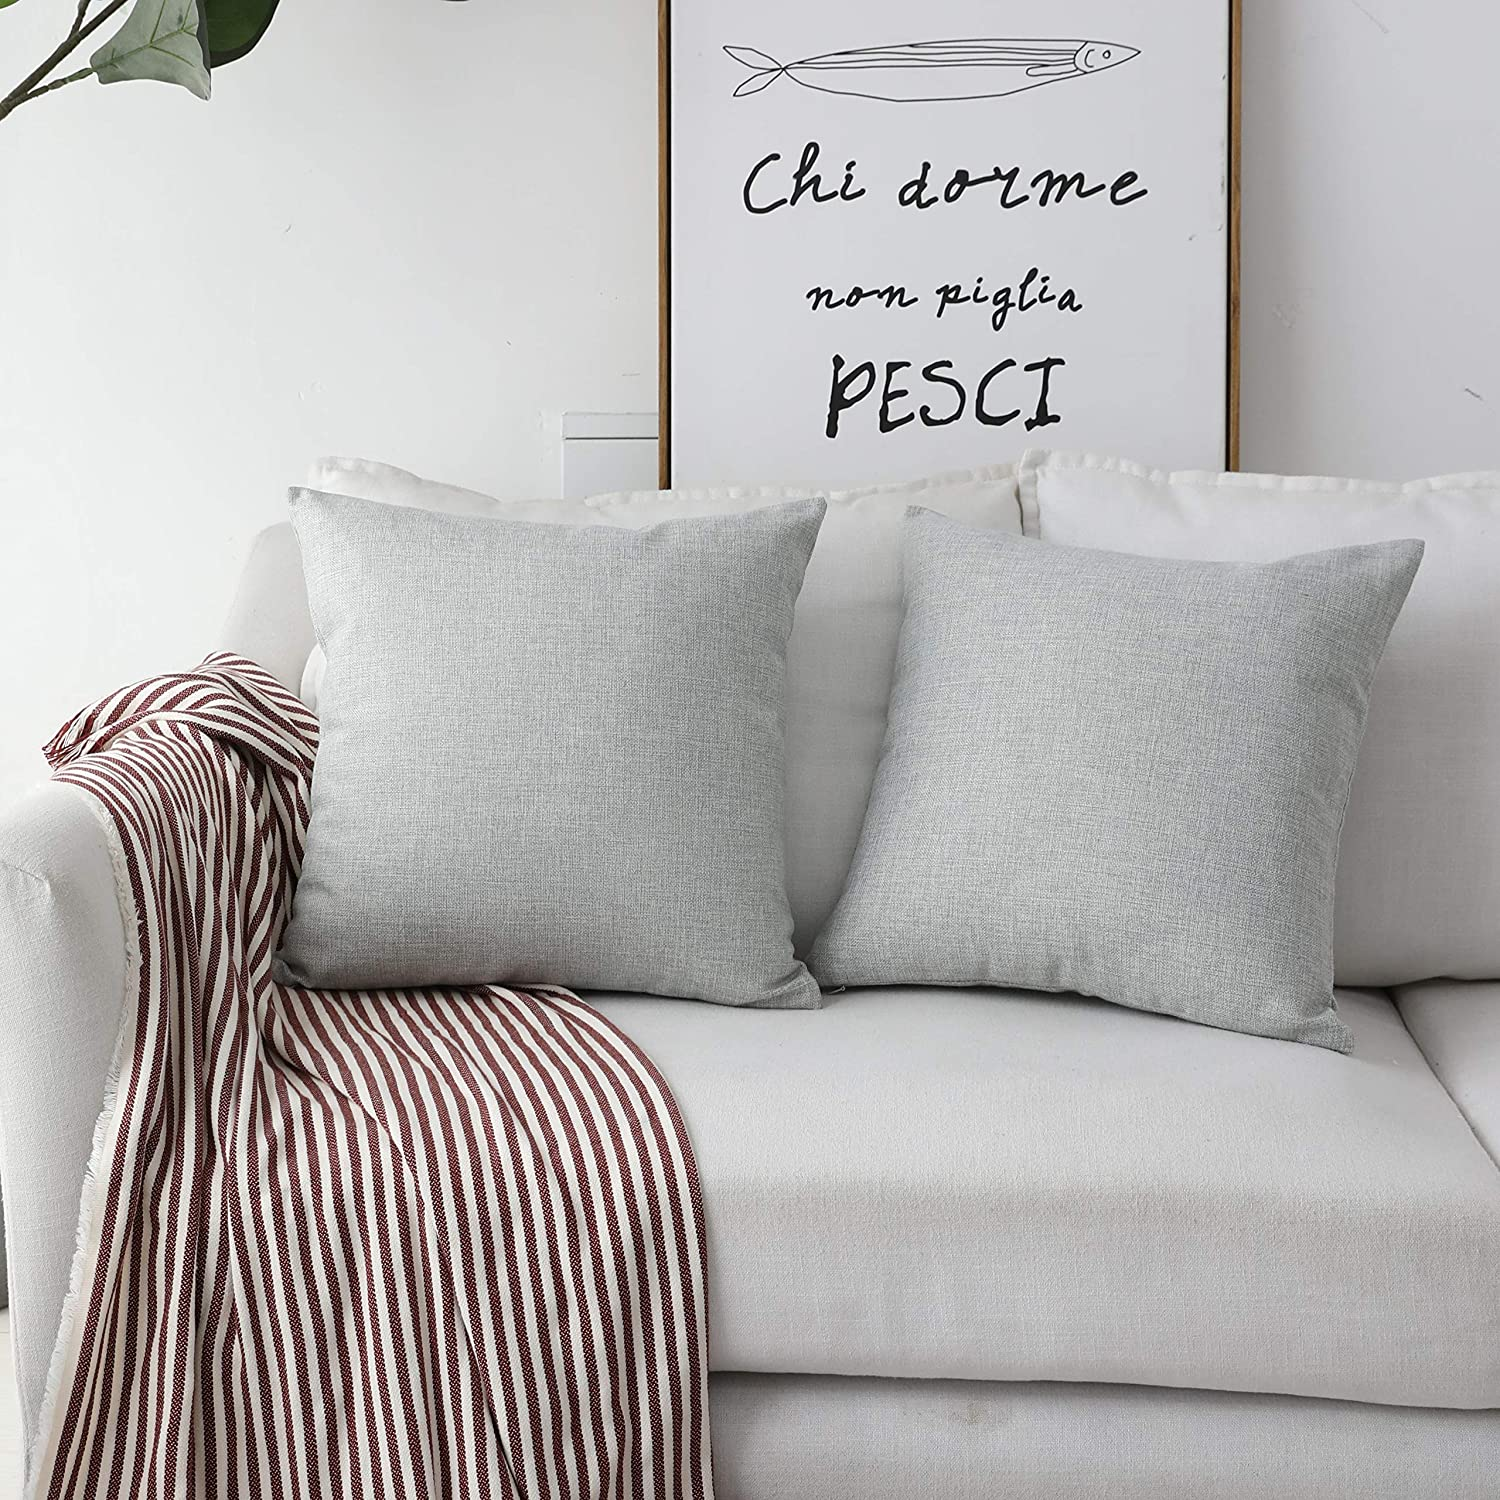 Home Brilliant Set of 2 Decorative Pillow Covers for Couch Accent Pillows Cases for Sofa, 16x16 inch, Light Grey